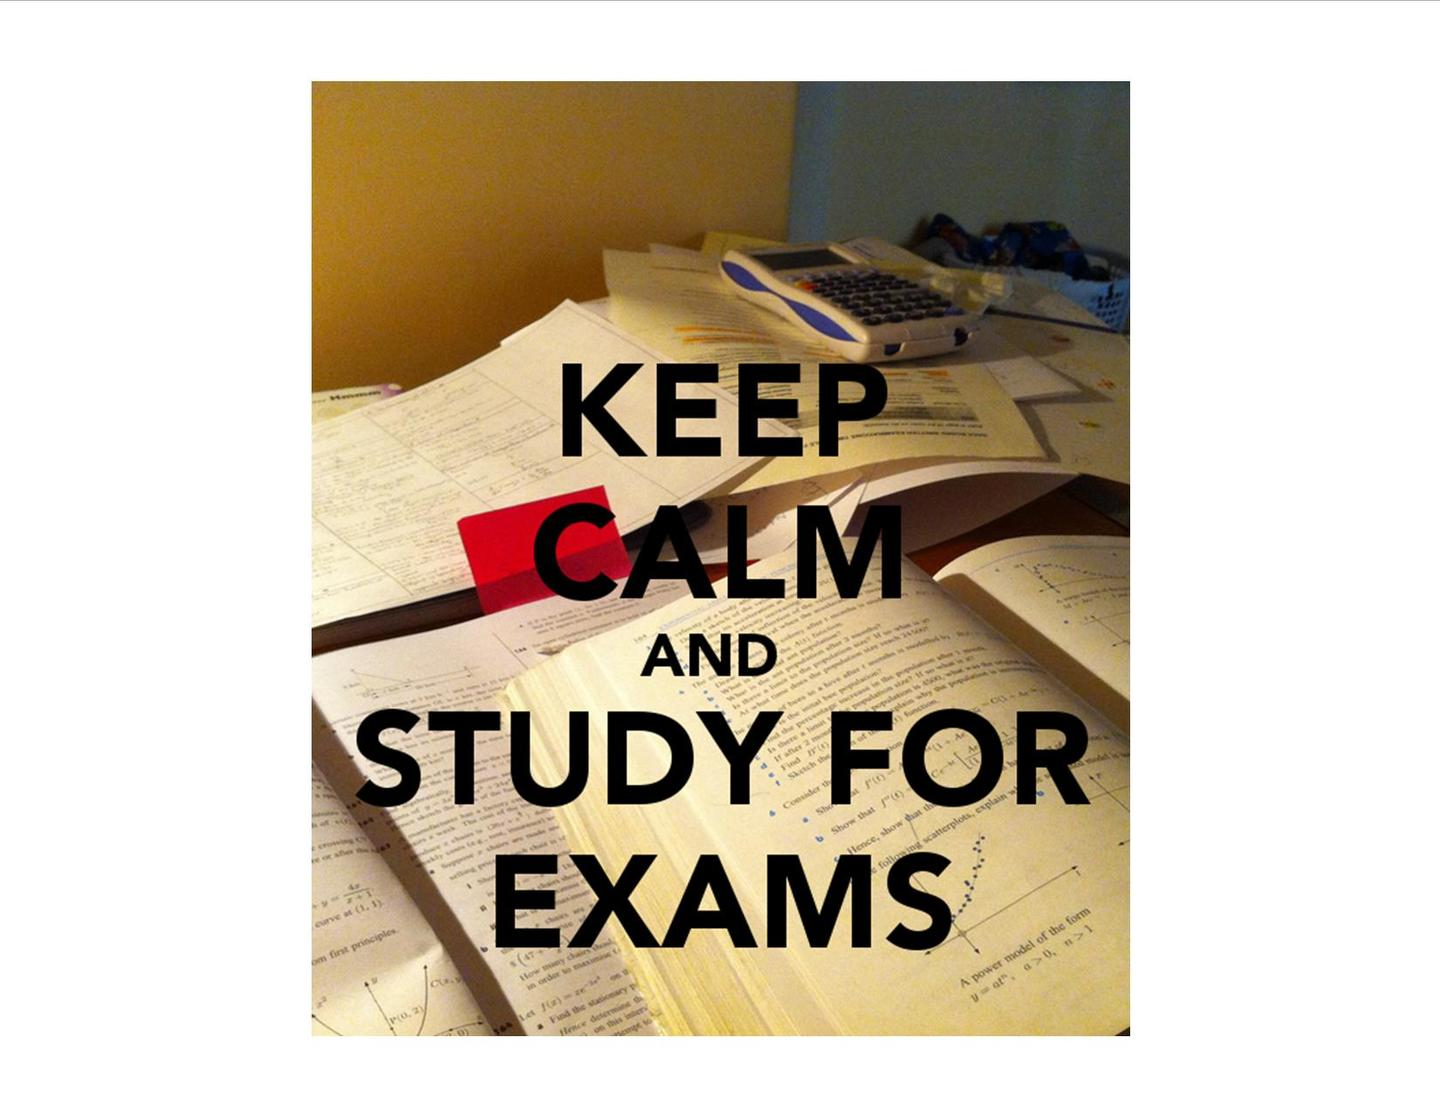 Midterms and Final Exams - January 21 - 24, 2019